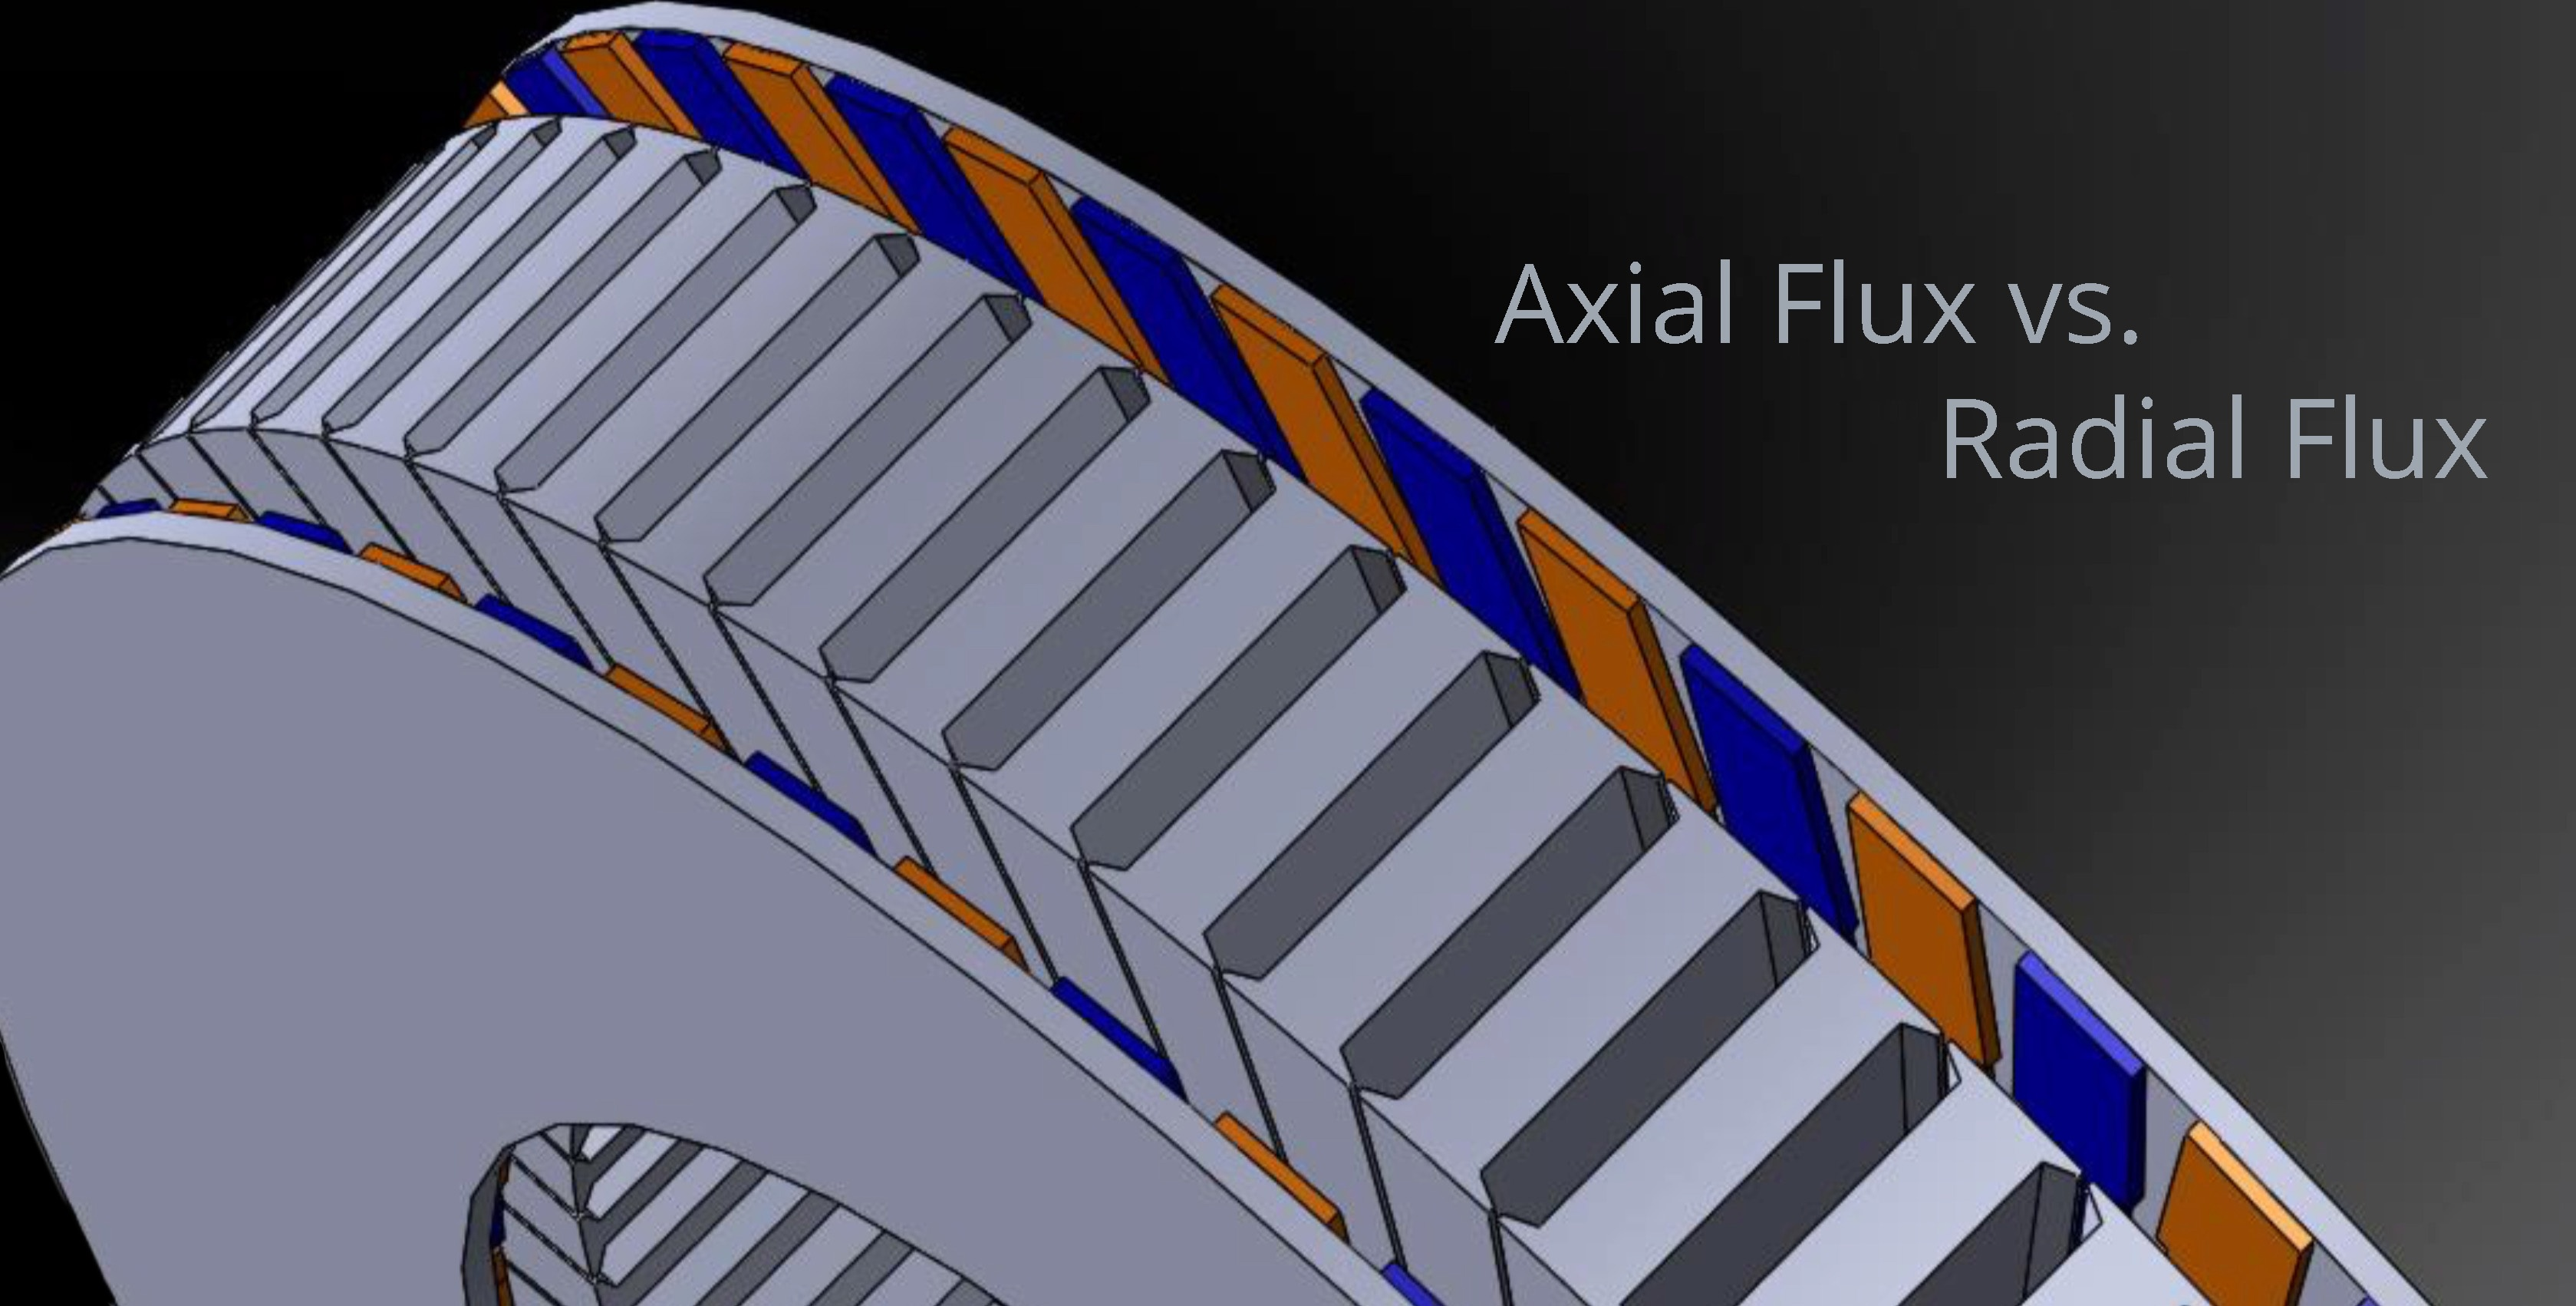 Axial Flux vs Radial Flux: 4 Reasons Why Axial Flux Machines have a